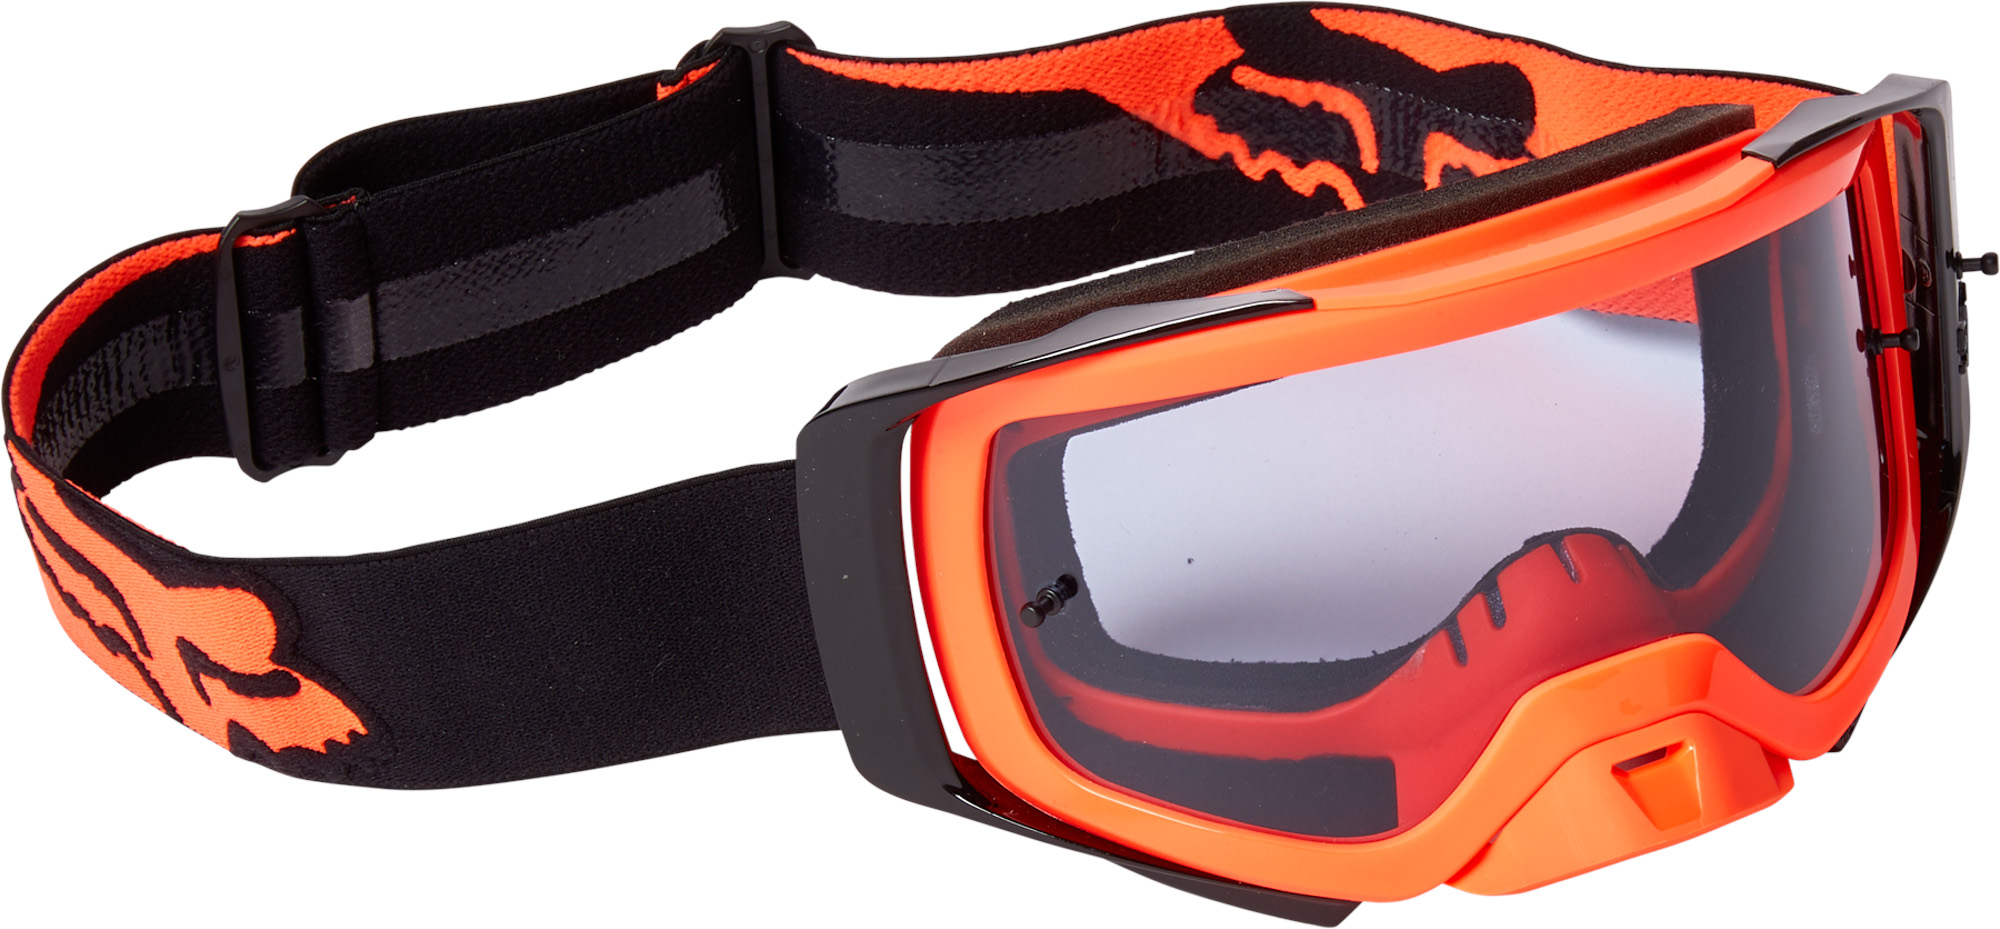 FOX Airspace Mirer Goggle - OS, Fluo Orange MX22